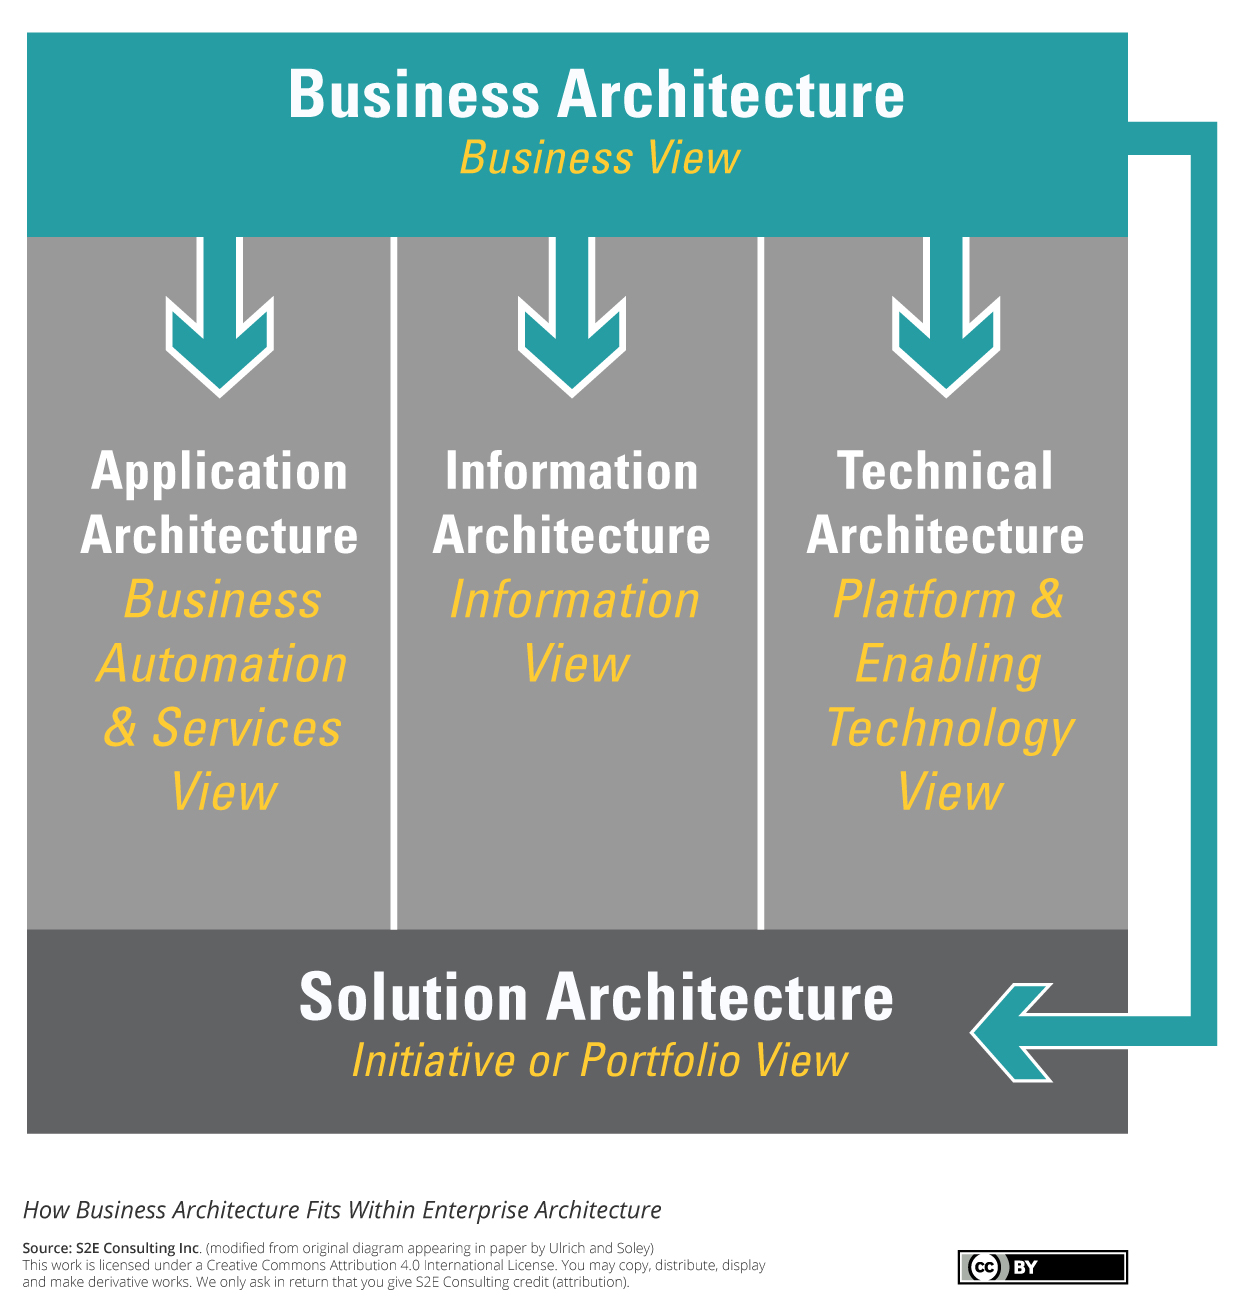 S2E How Business Architecture Fits Within Enterprise Architecture